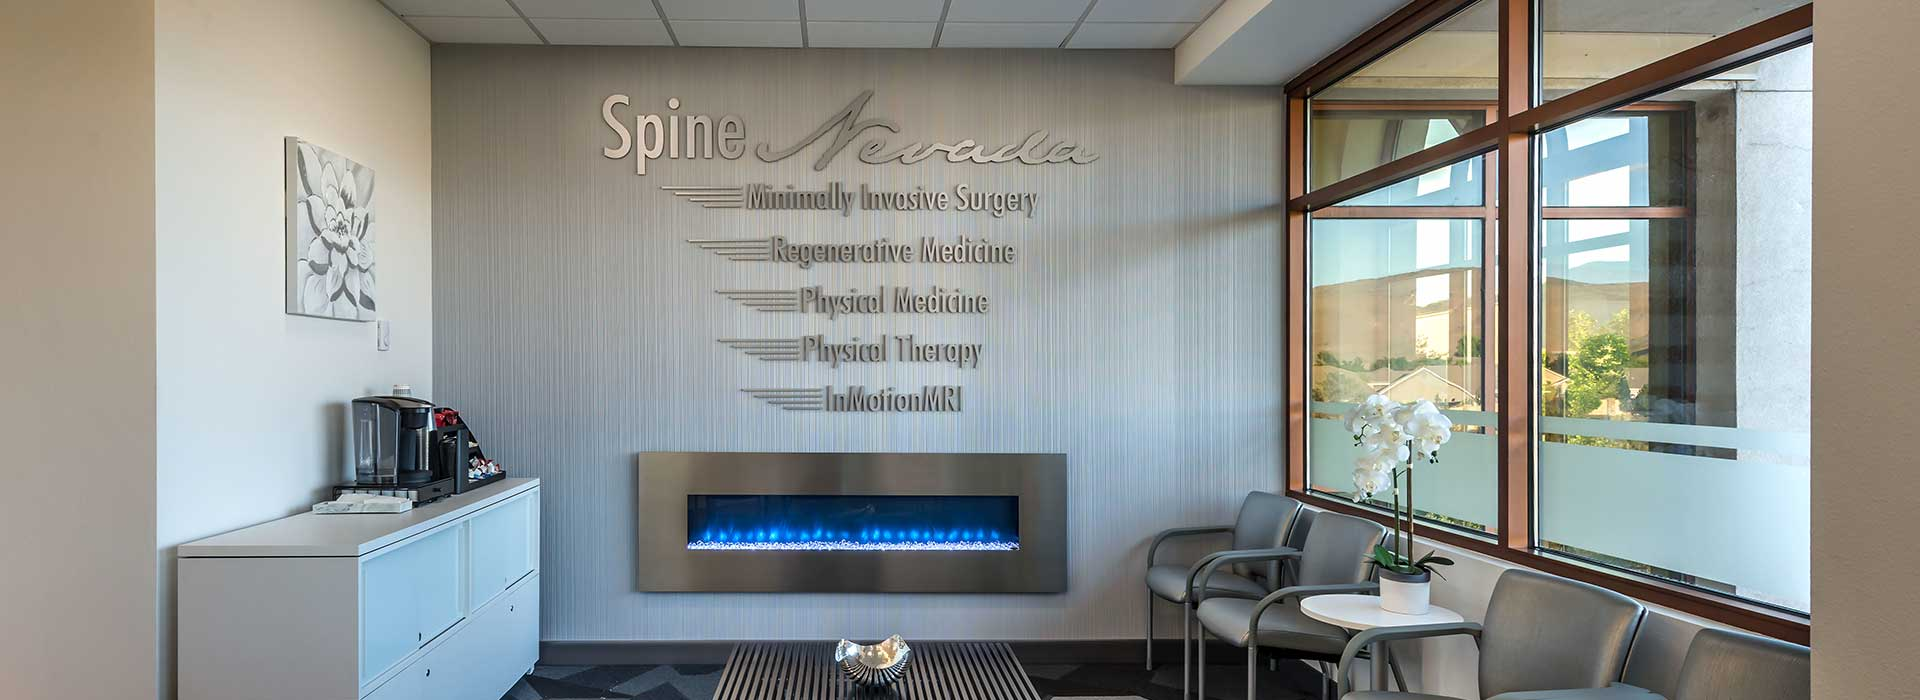 Spine Surgeons, physical medicine, physical therapy, musculoskeletal